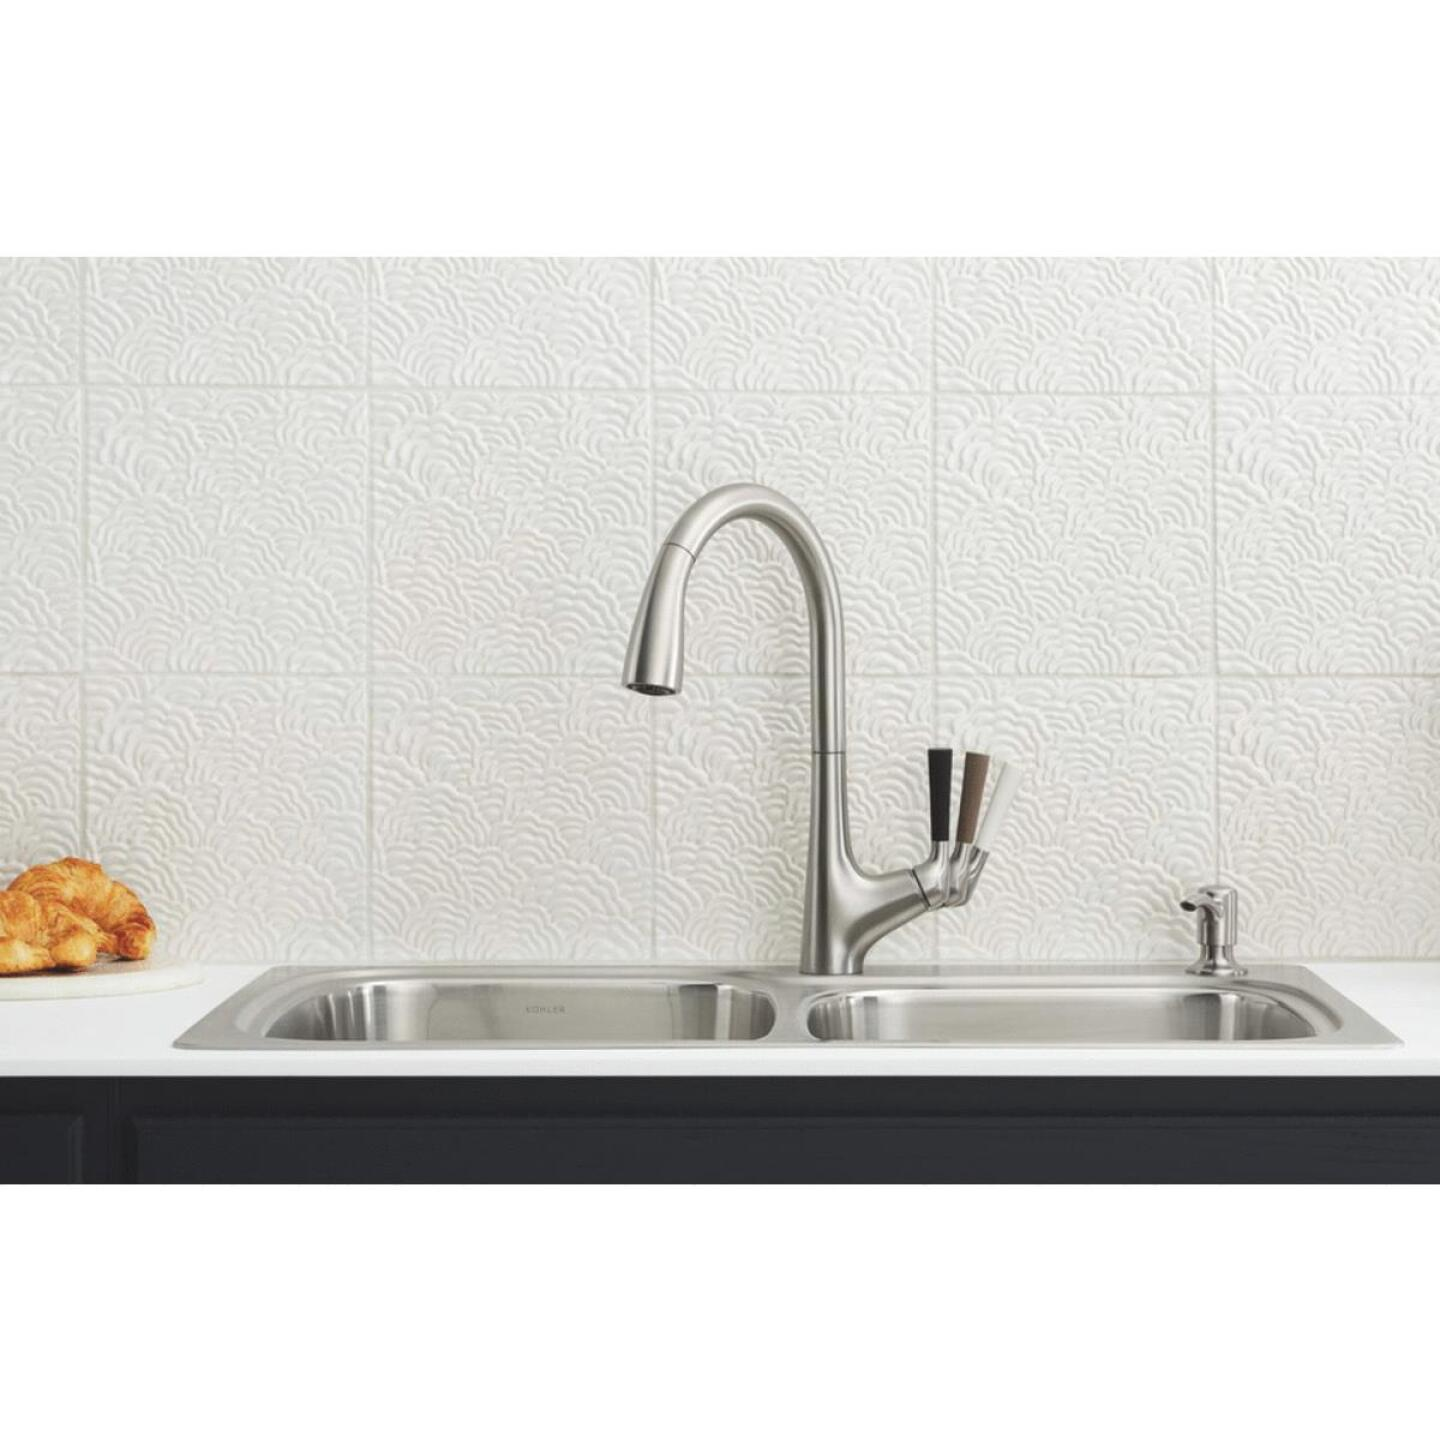 Kohler Malleco Single Handle Lever Pull-Down Kitchen Faucet, Stainless Image 6